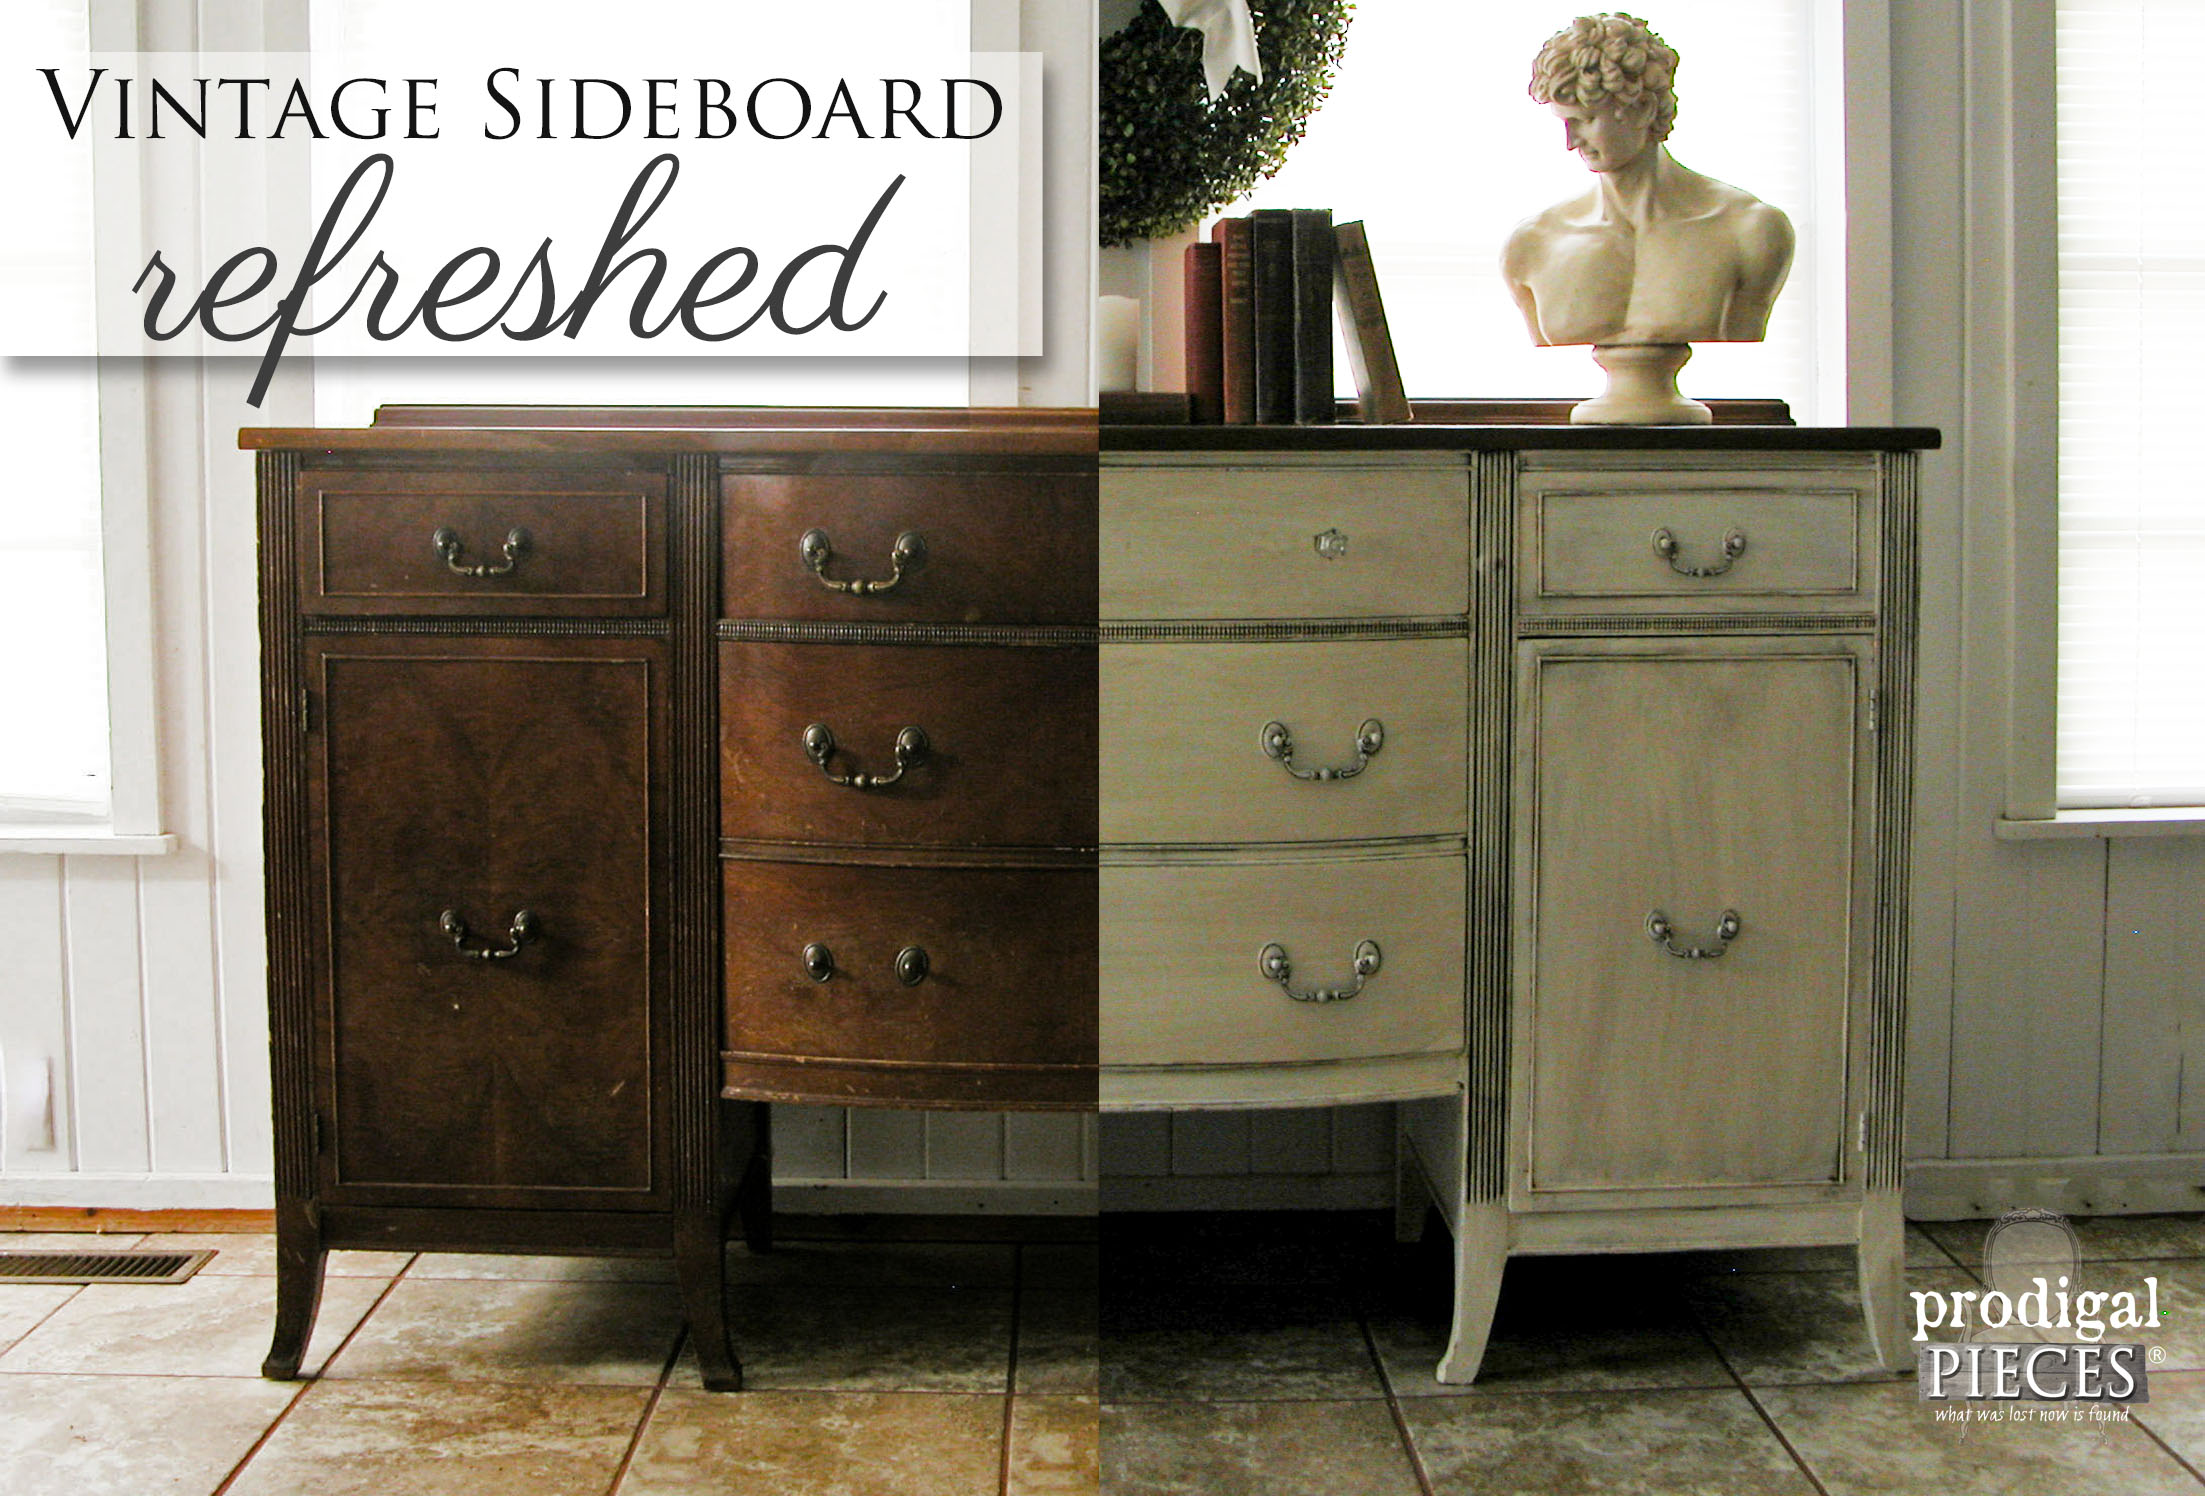 Vintage Sideboard Refreshed with Stain and Paint by Prodigal Pieces | www.prodigalpieces.com